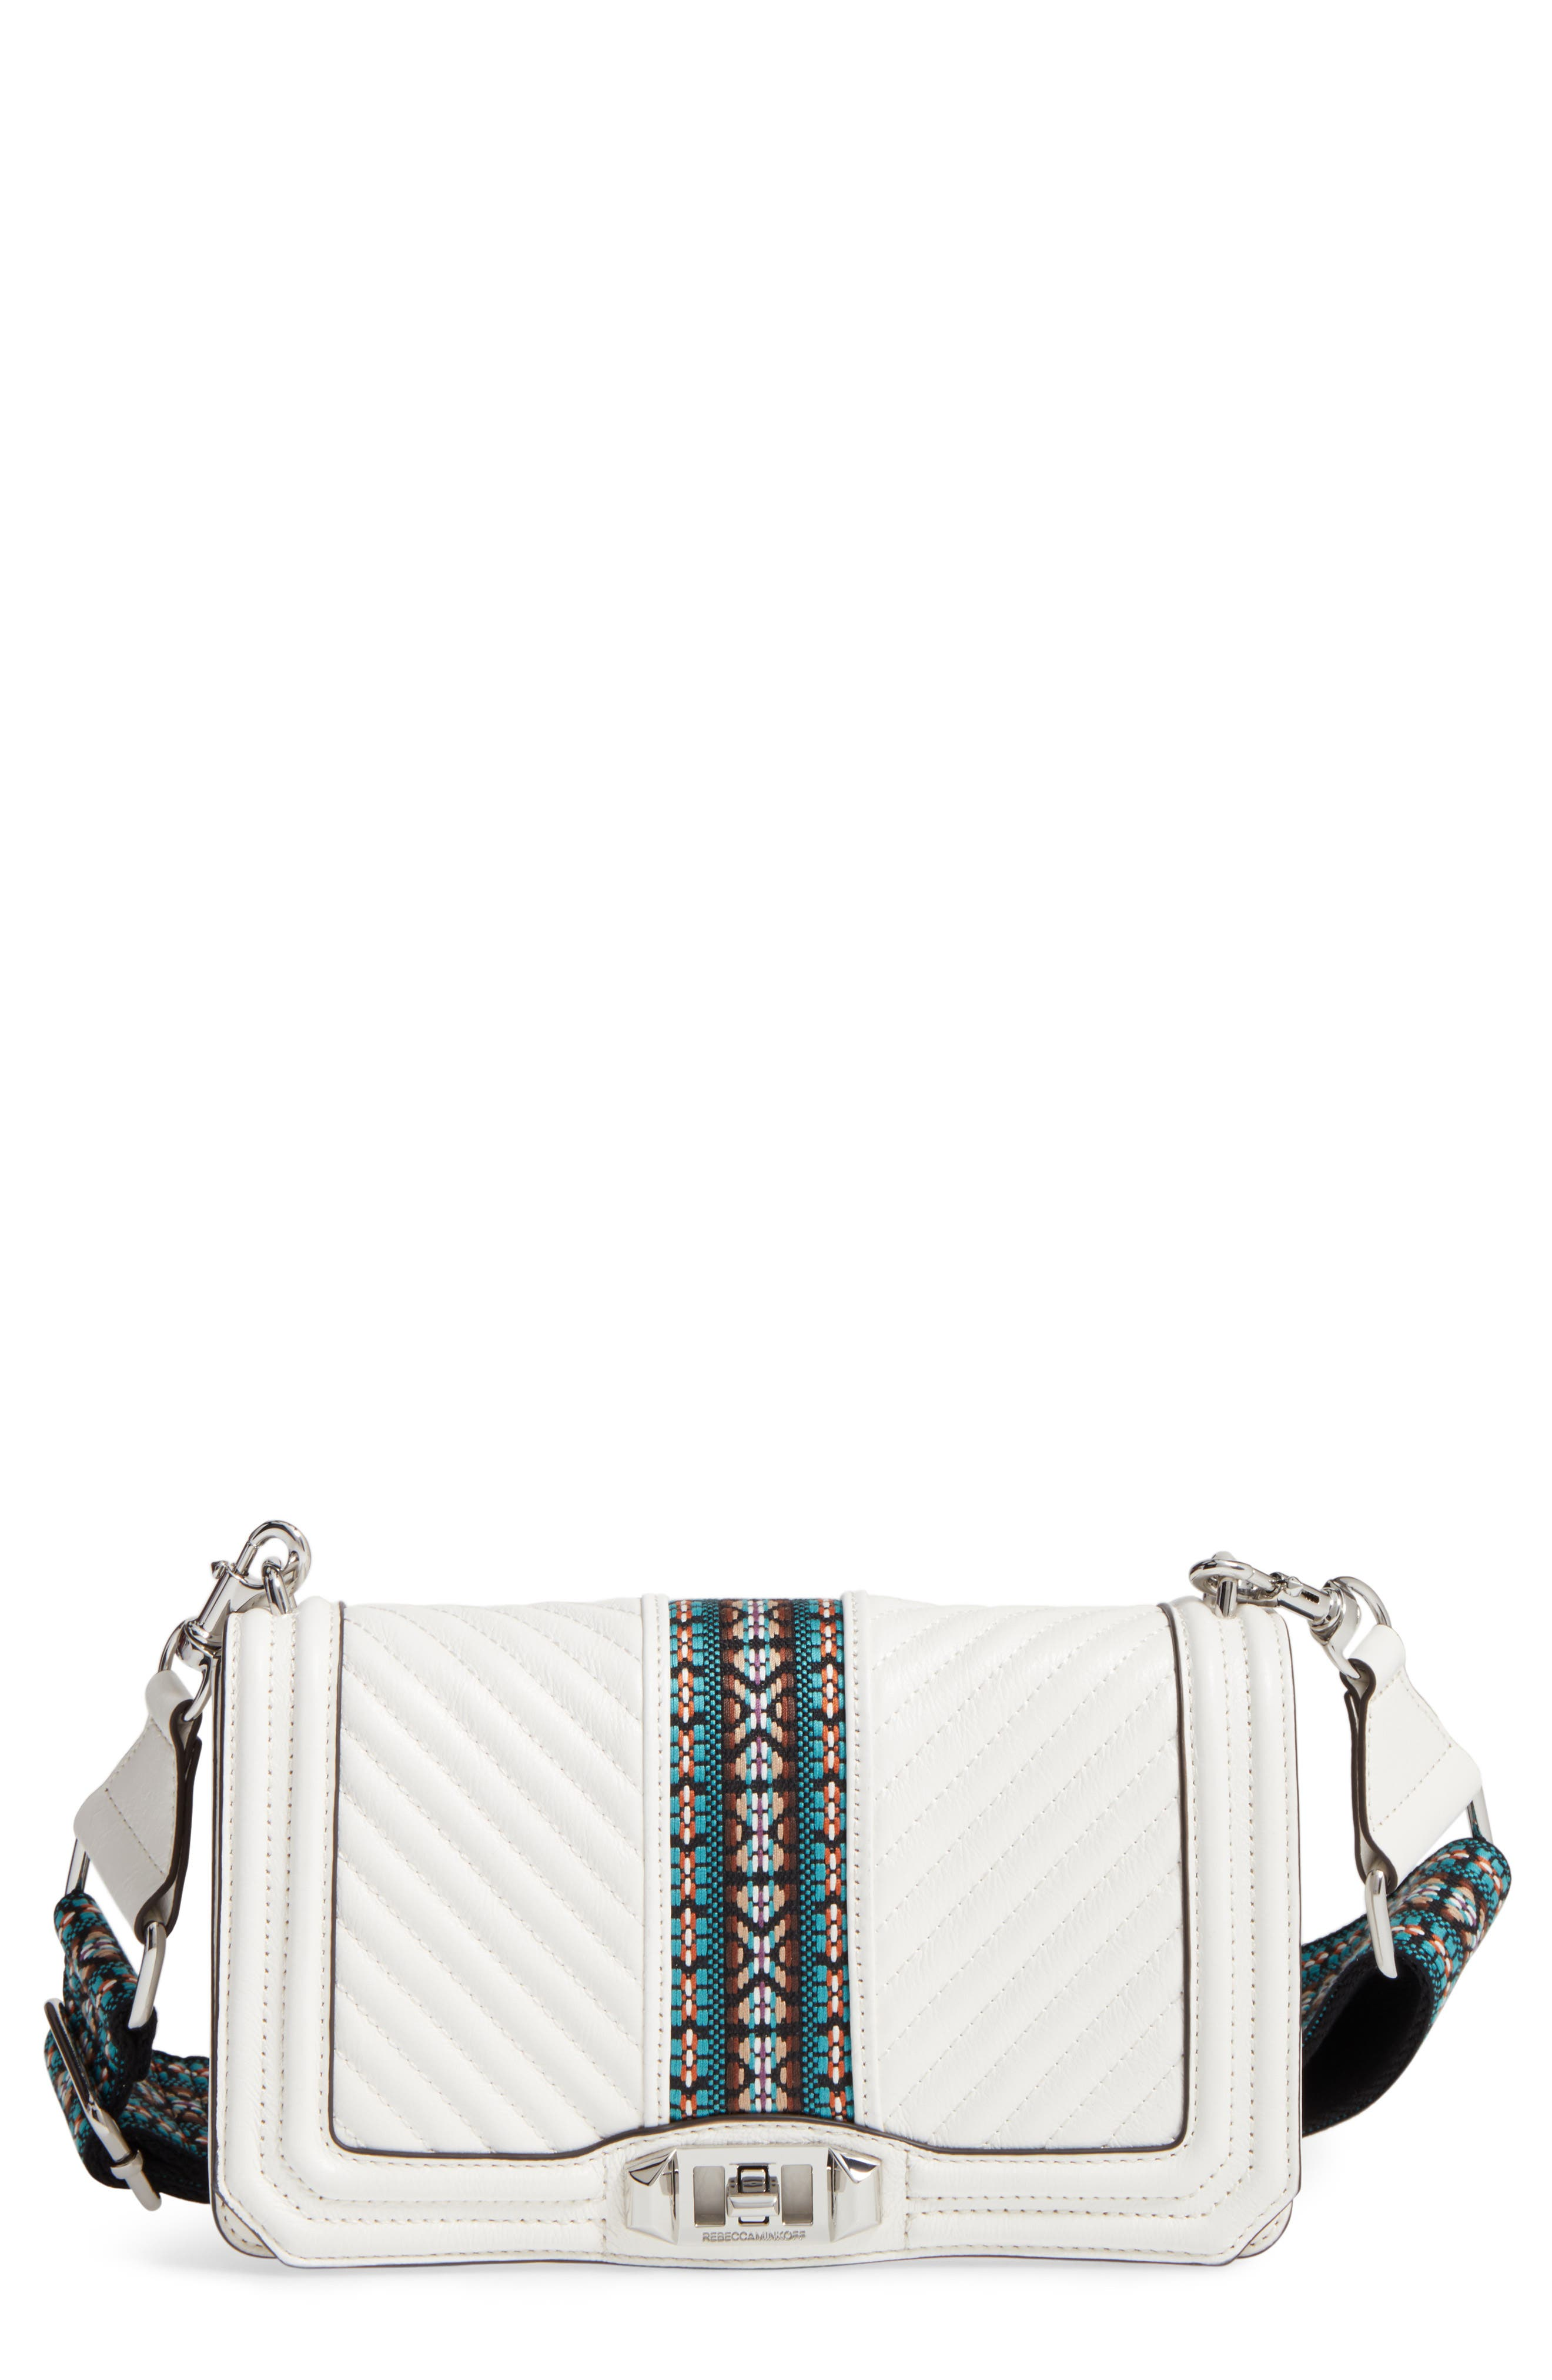 Rebecca Minkoff Jacquard Love Leather Crossbody Bag with Guitar Strap